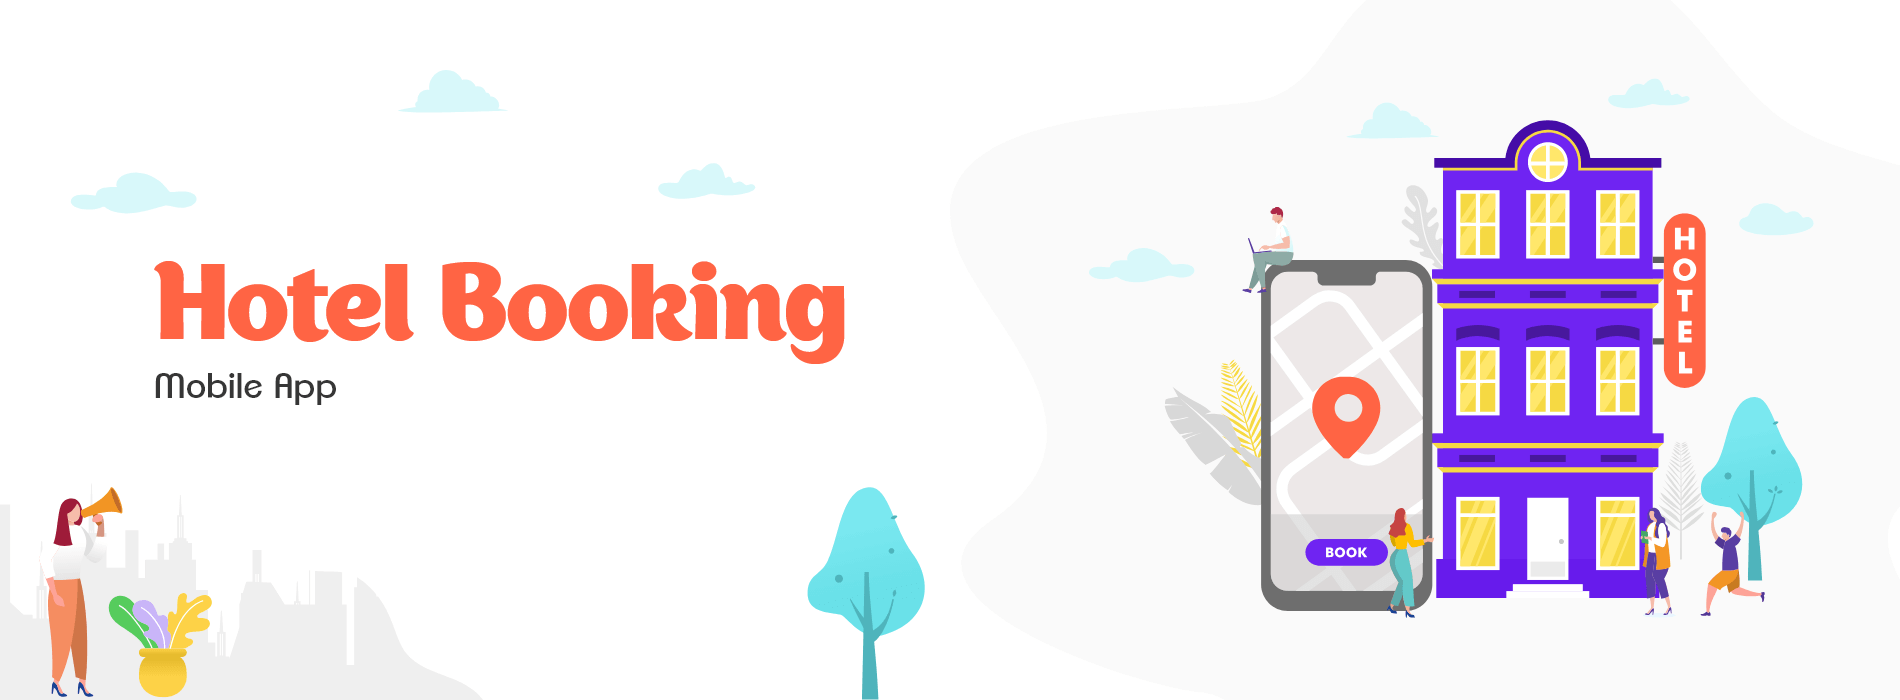 How to Create A Hotel Booking Mobile App?